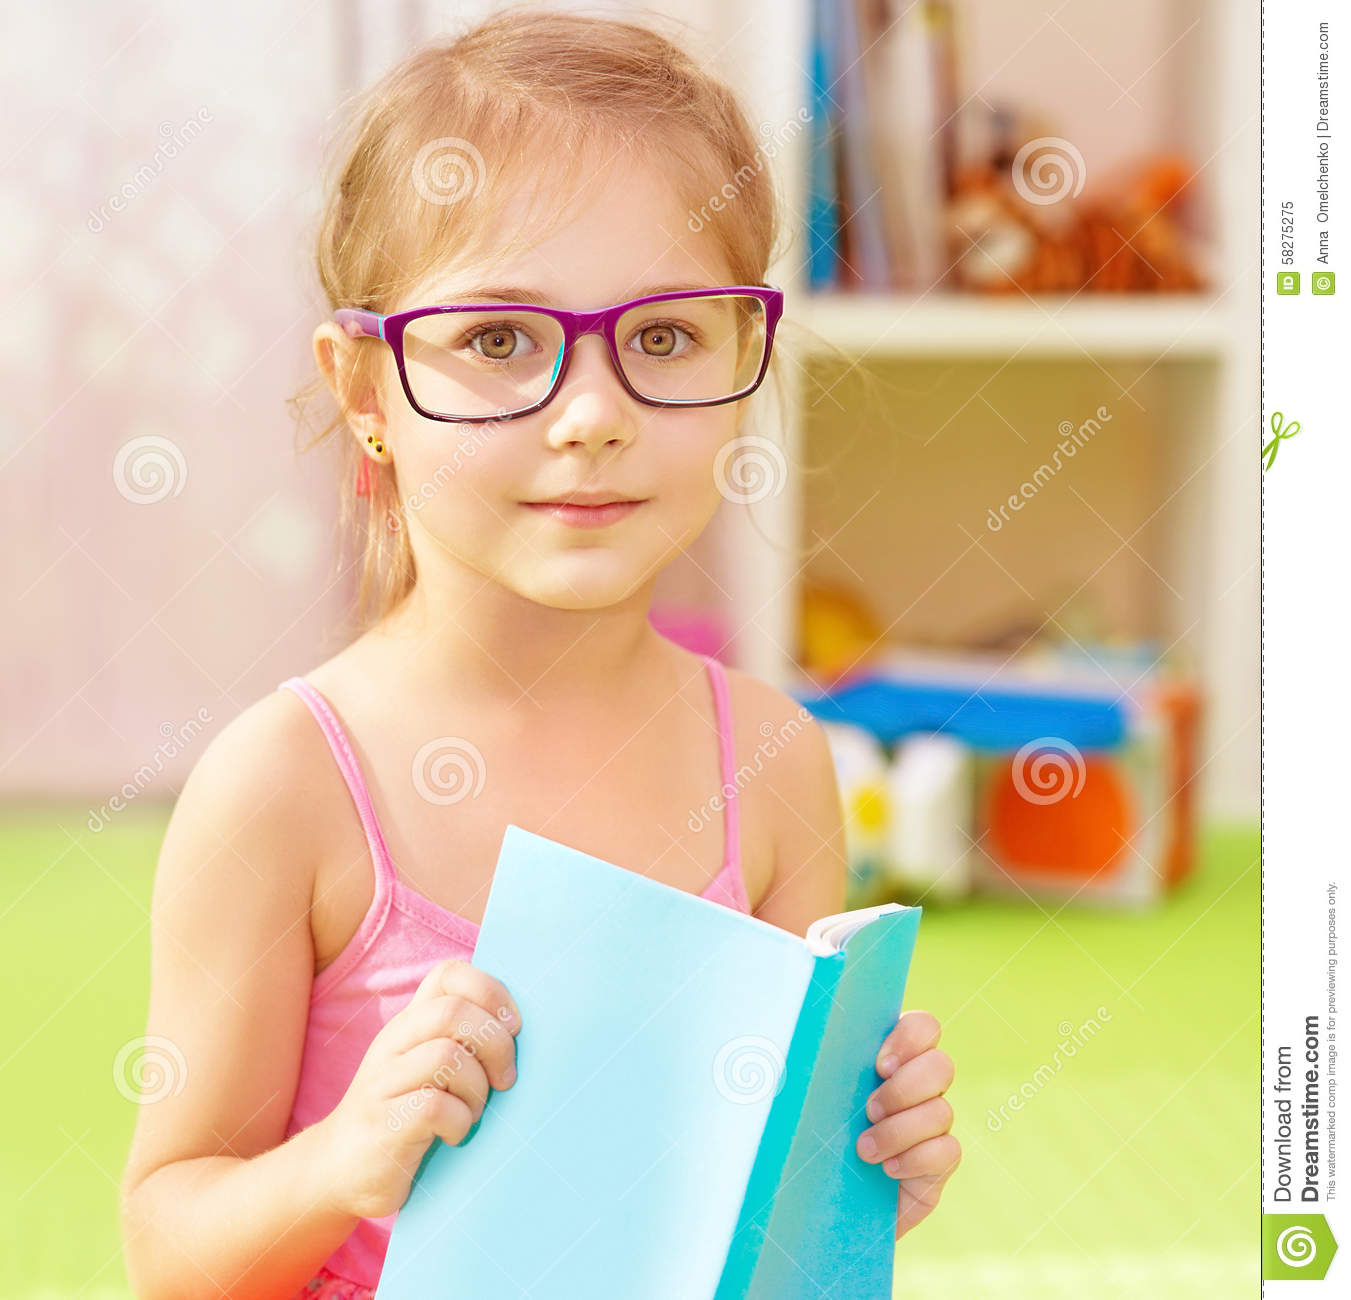 Clever School Girl: Little Clever Schoolgirl Stock Image. Image Of Girl